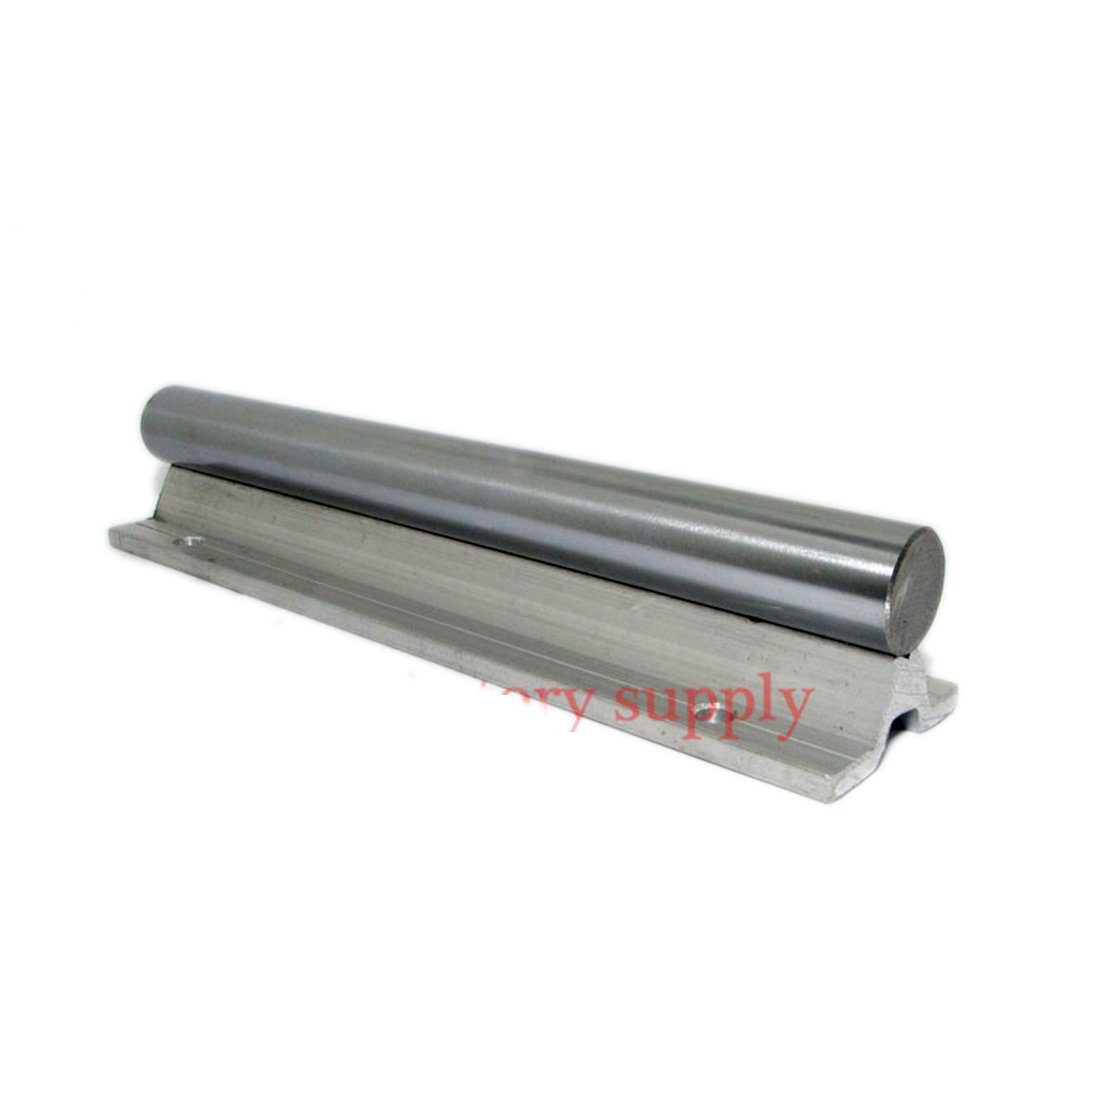 2pcs SBR10 10mm rail L100mm linear guide SBR10-100mm cnc router part linear rail